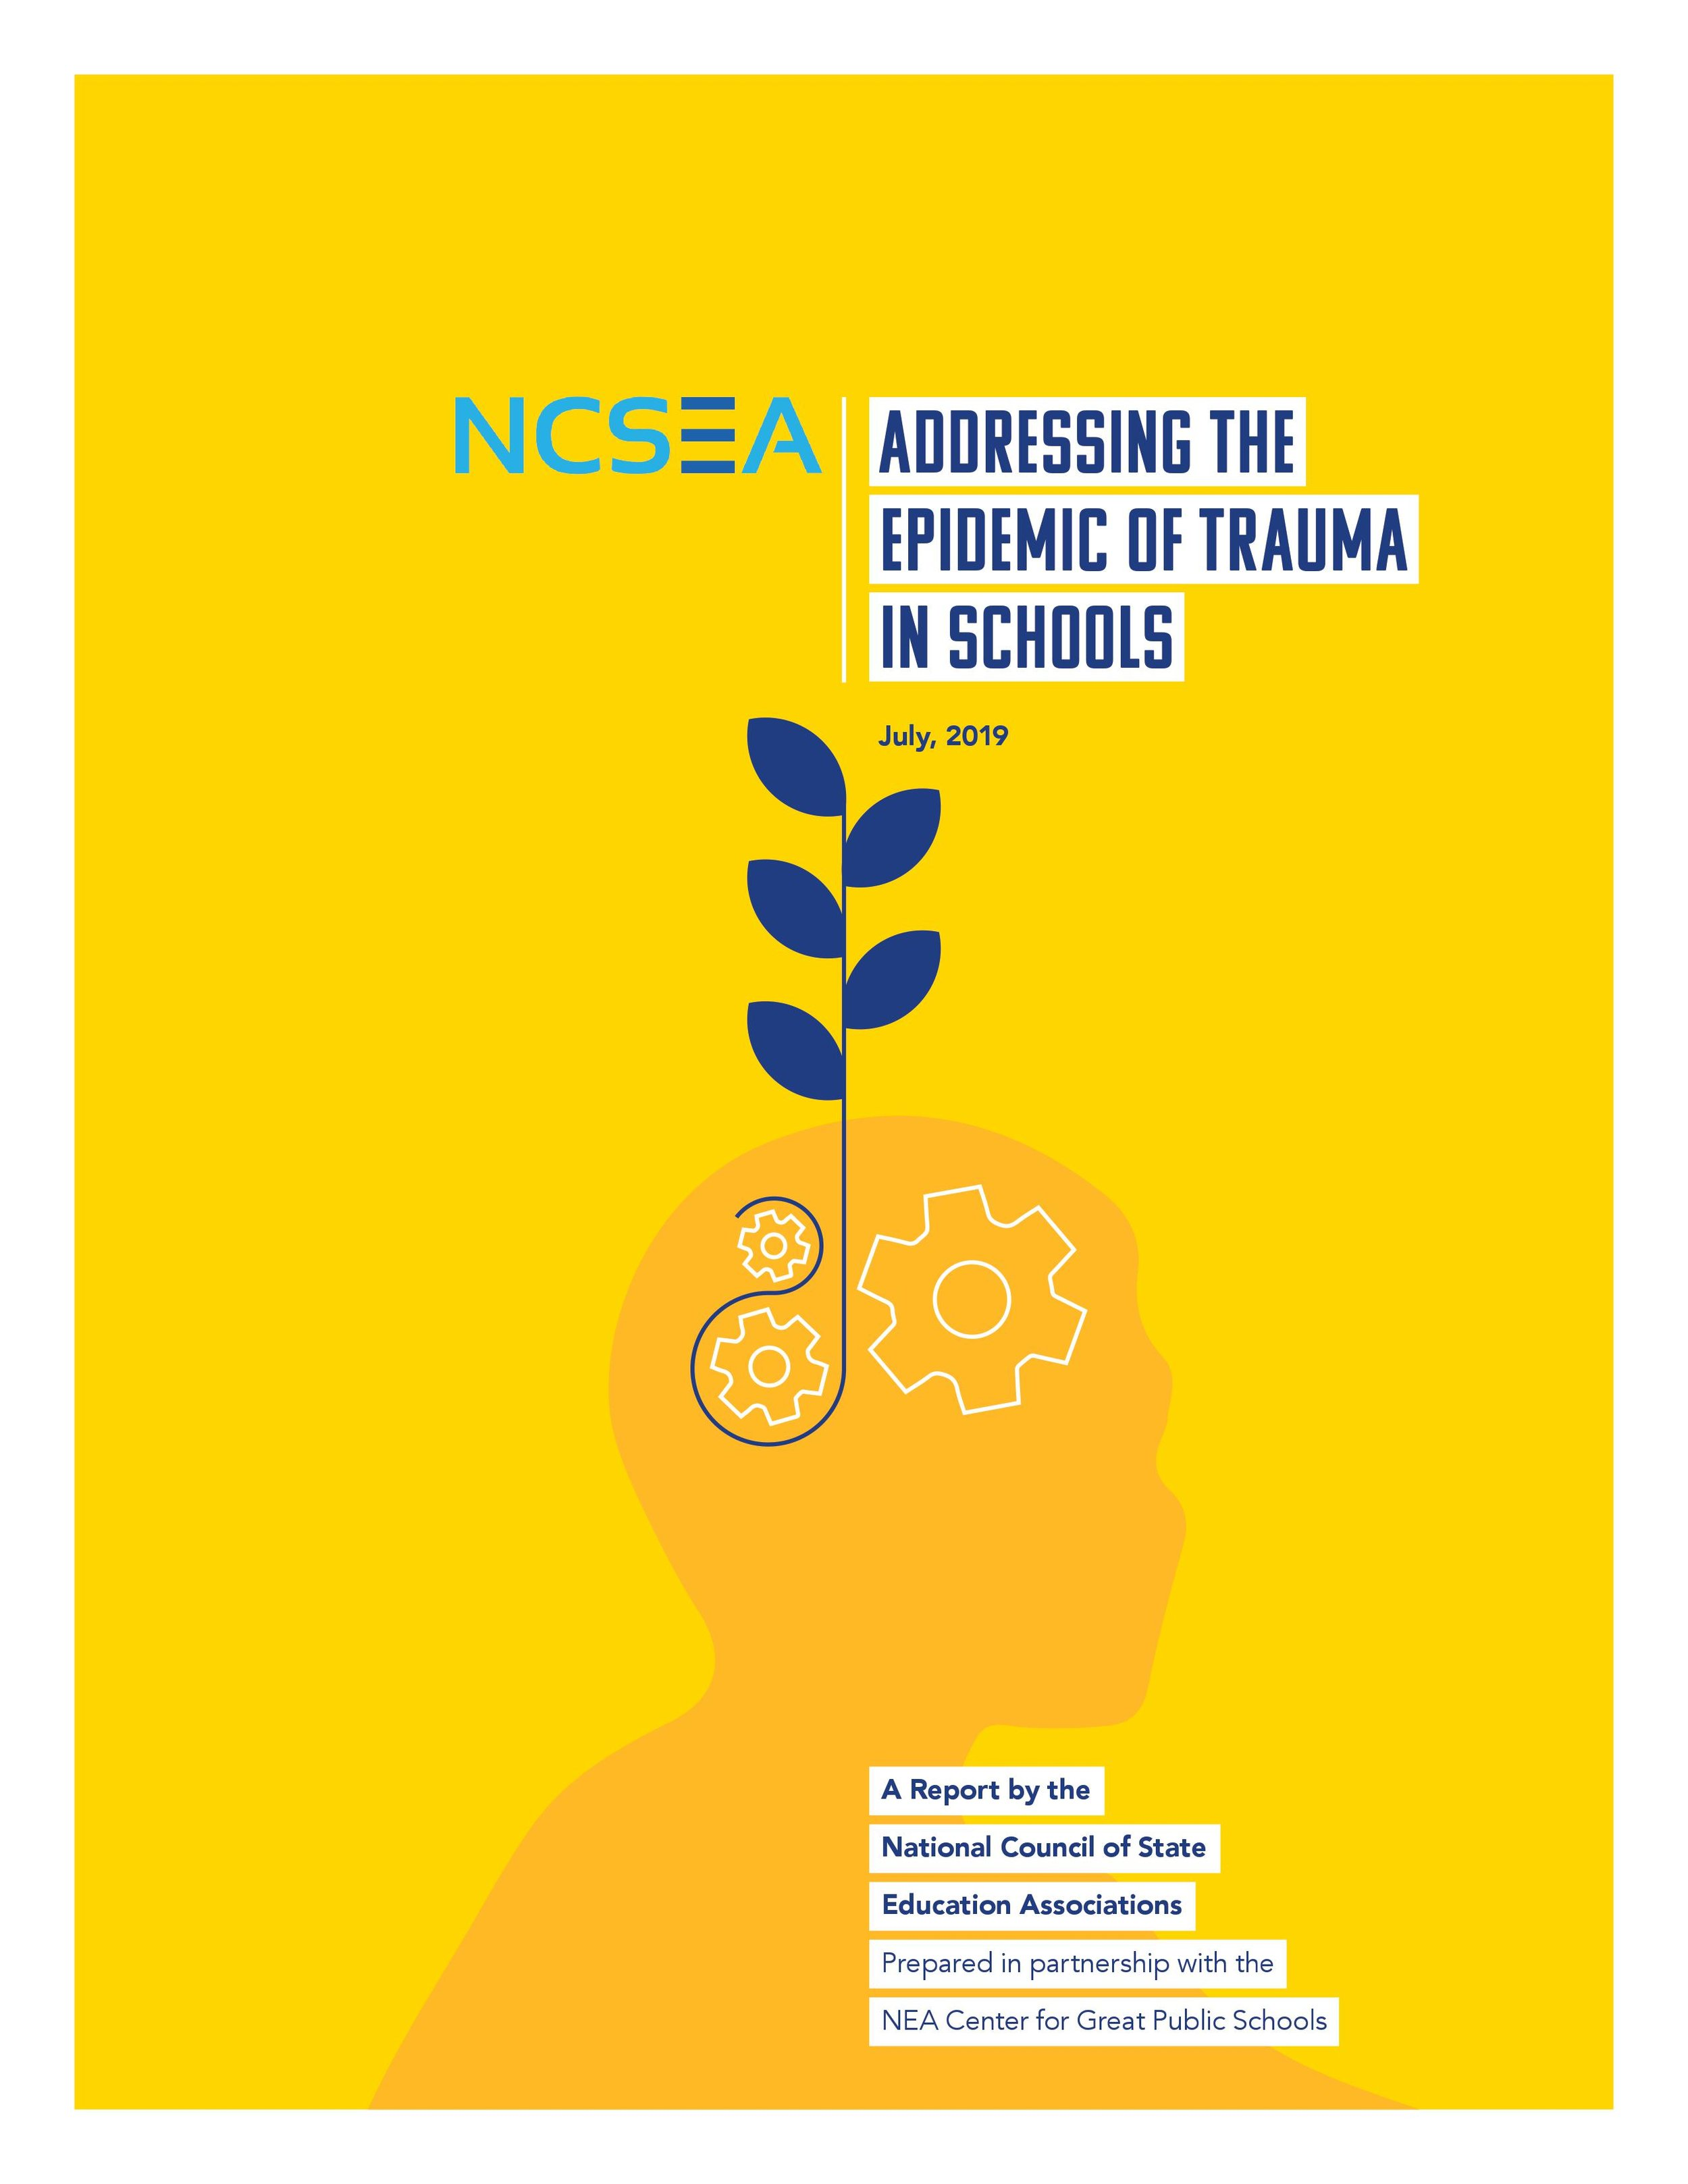 We are proud of this work with the NEA to organize trauma response for students across the country.